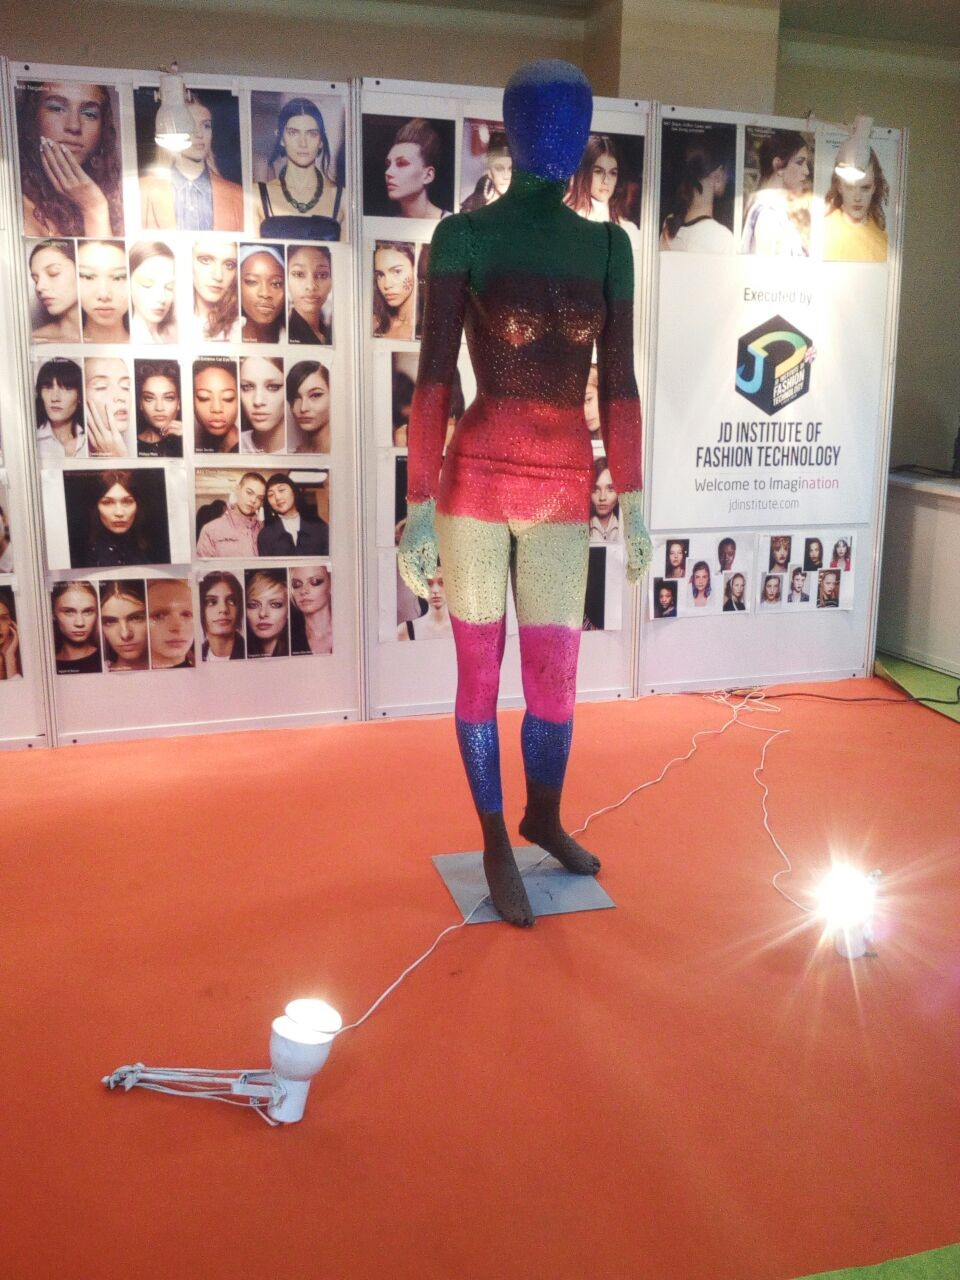 trade show 2018 trade show 2018 - art installation2 - JD Institute at the Fabrics & Accessories Trade Show 2018